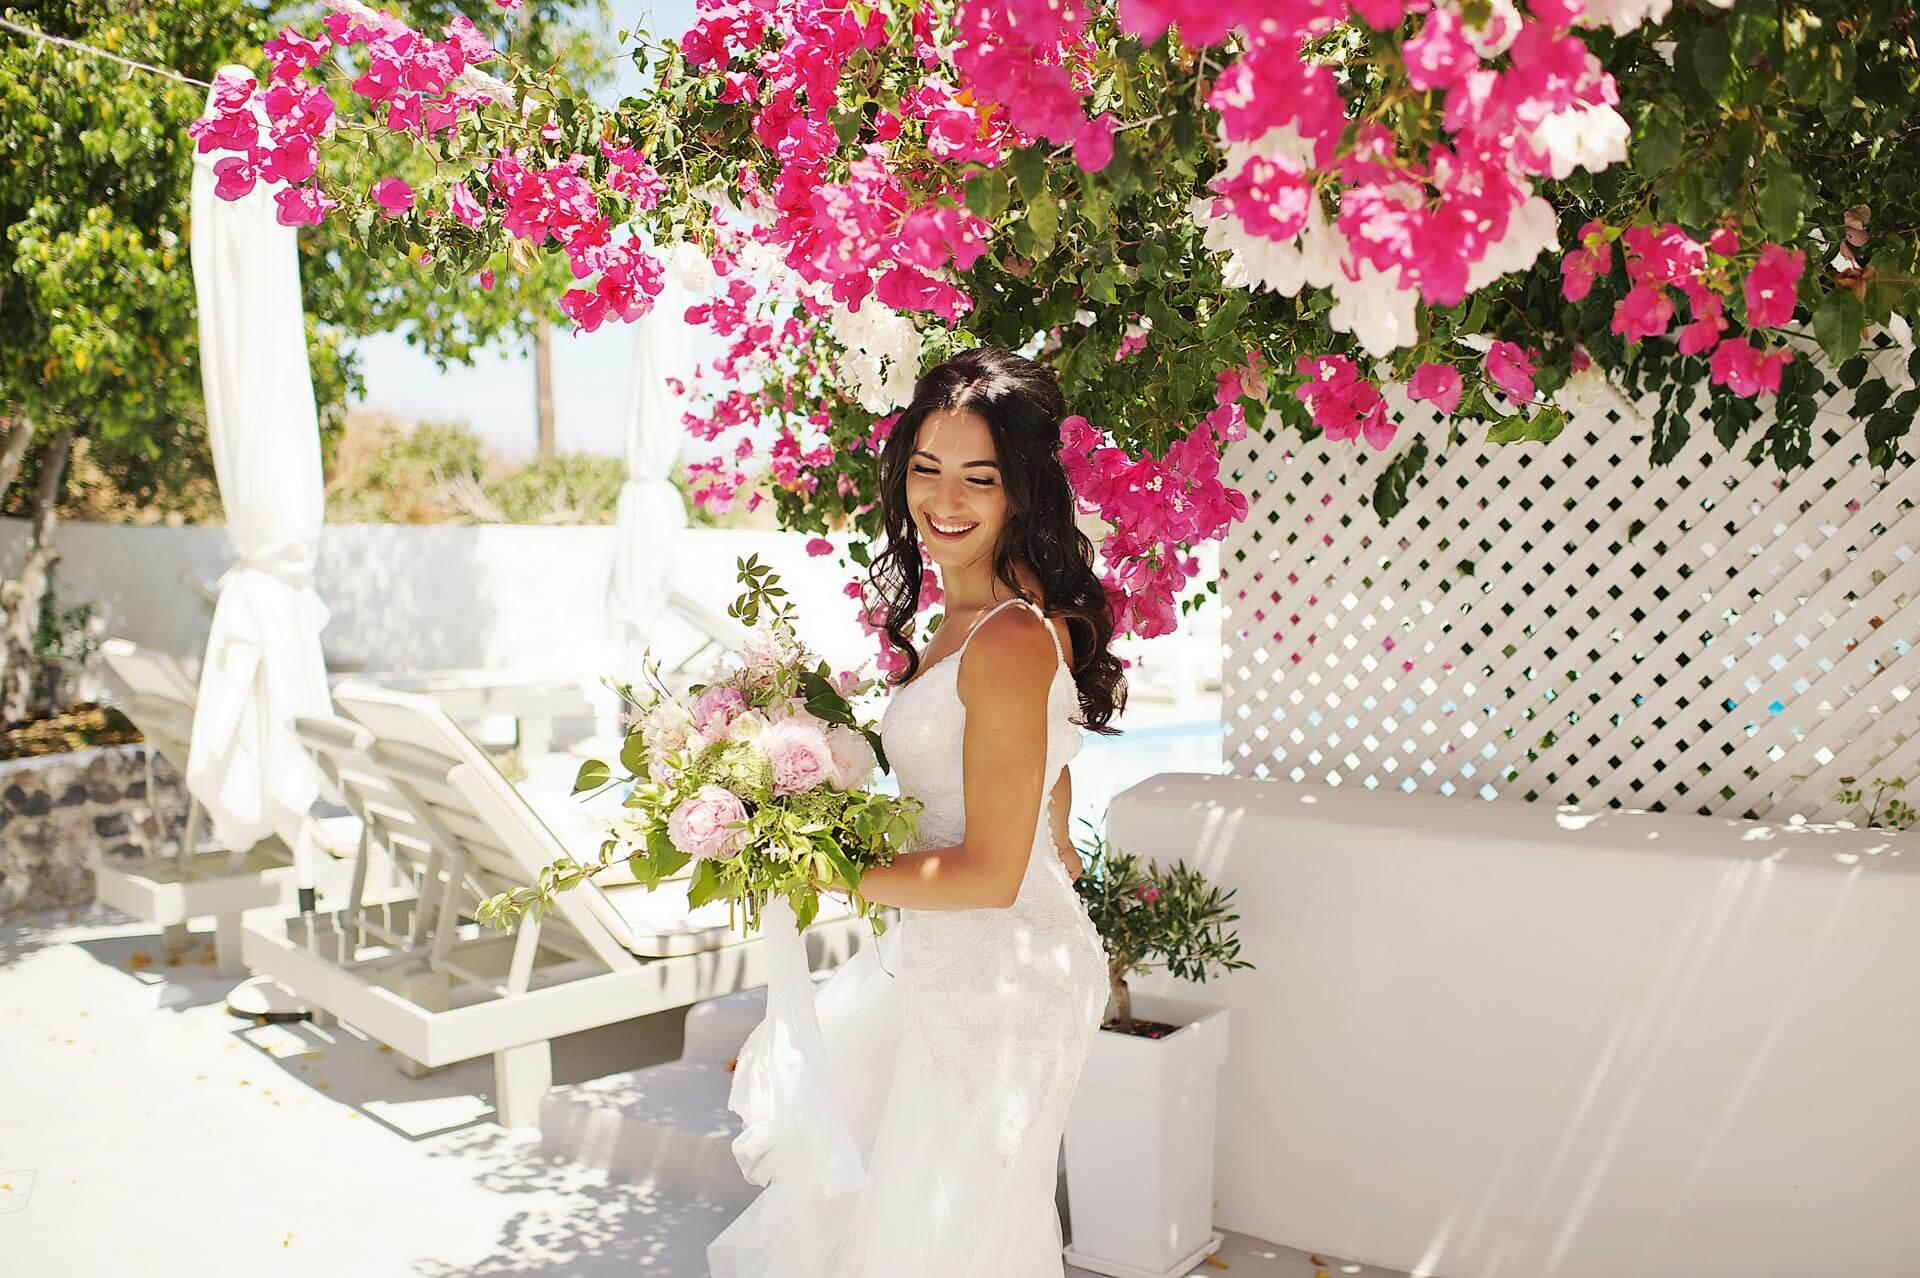 Your-Santorini-Wedding-Santorini-Wedding-Planner-Santorini-Wedding-Venue-Santo-Wines-Santorini